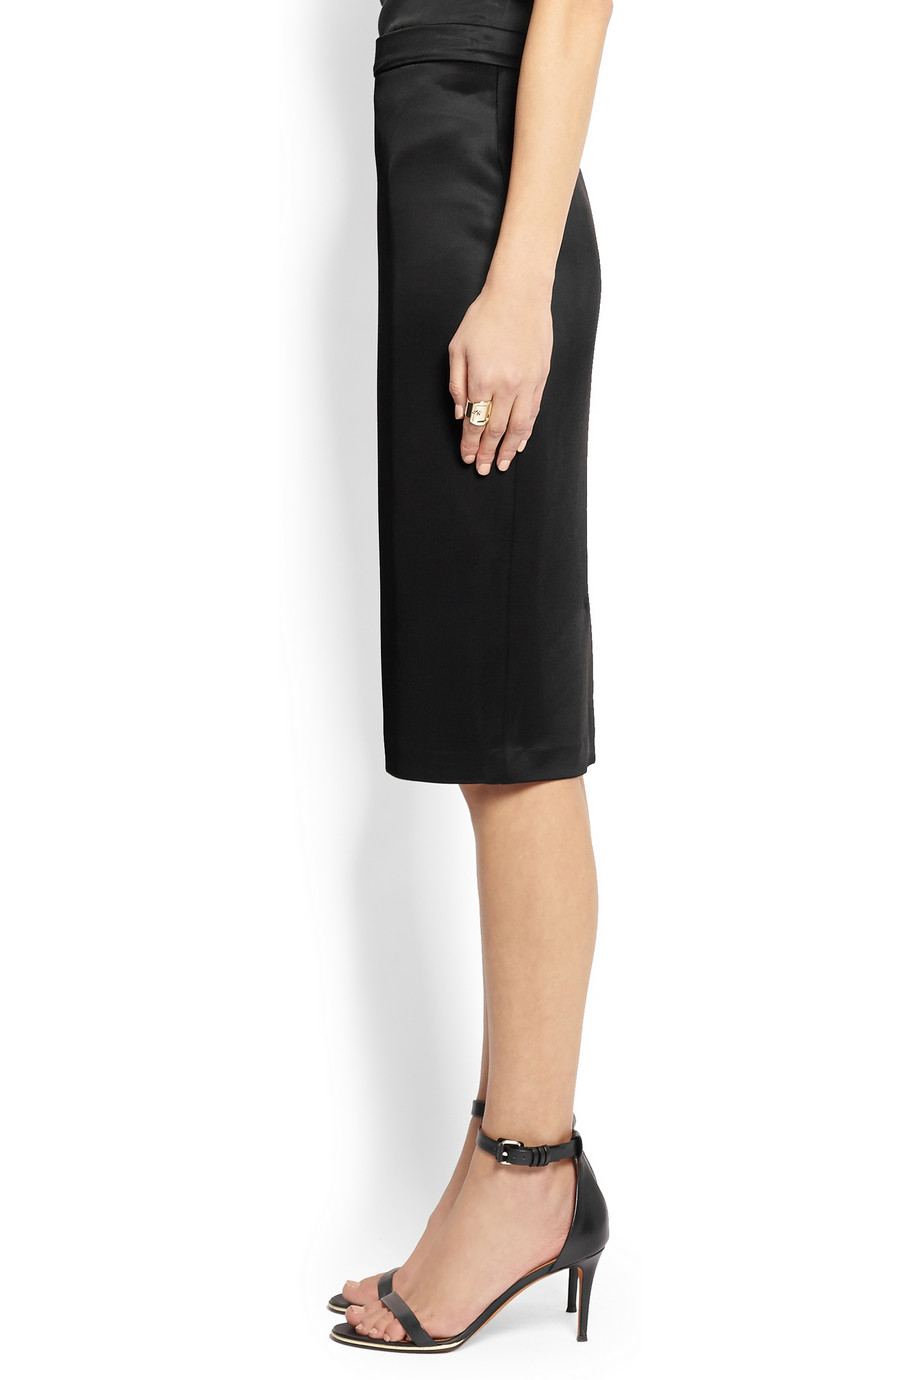 givenchy pencil skirt in black stretch jersey in black lyst